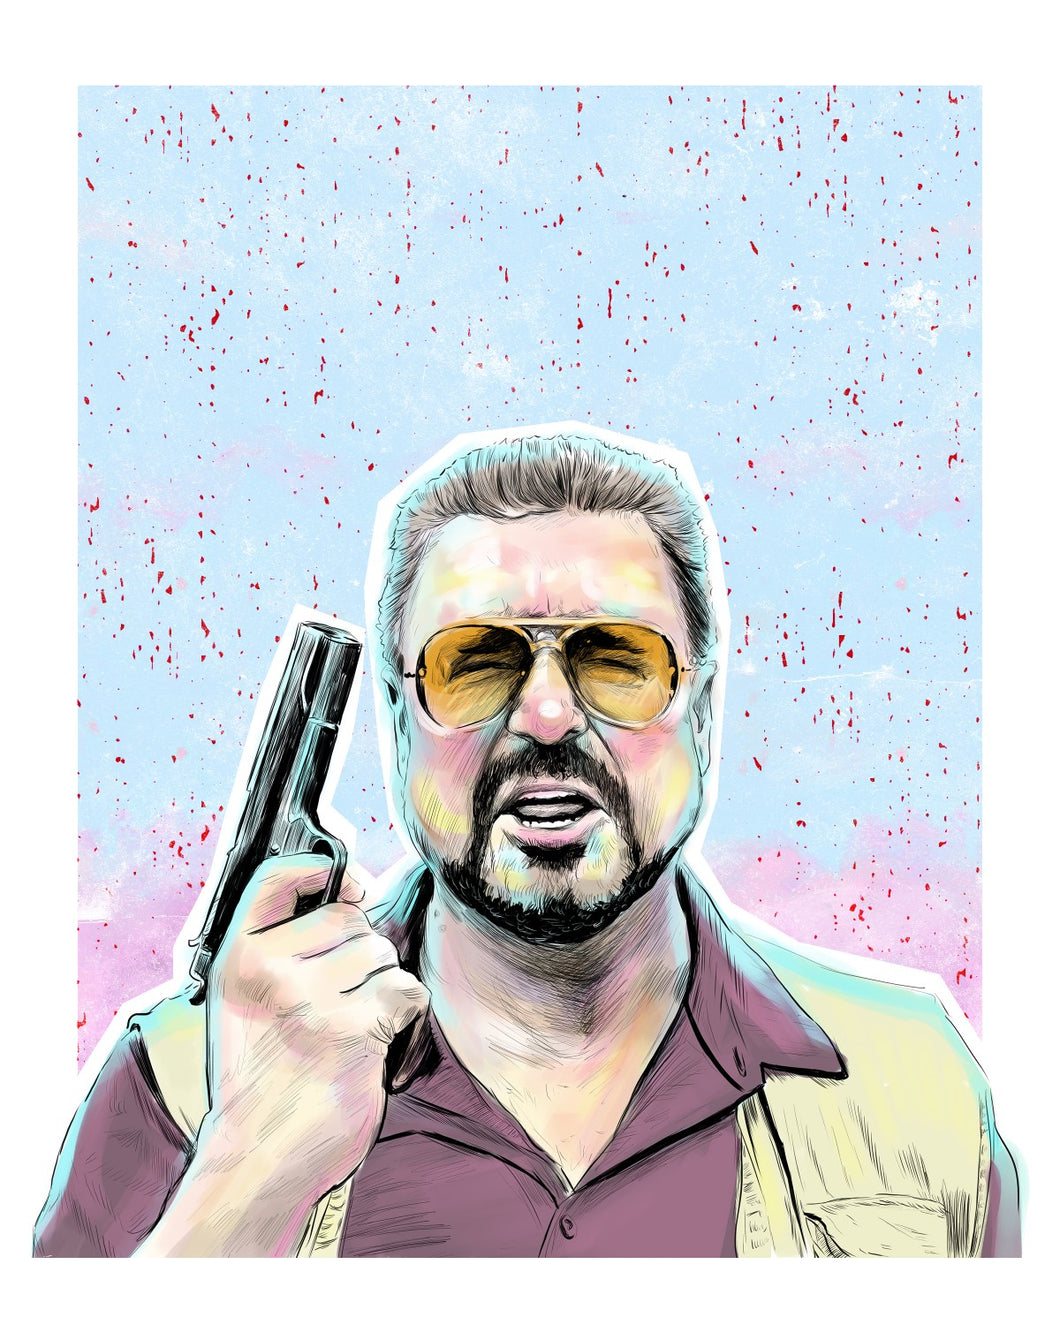 Walter (the Big Lebowski) 8x10 print